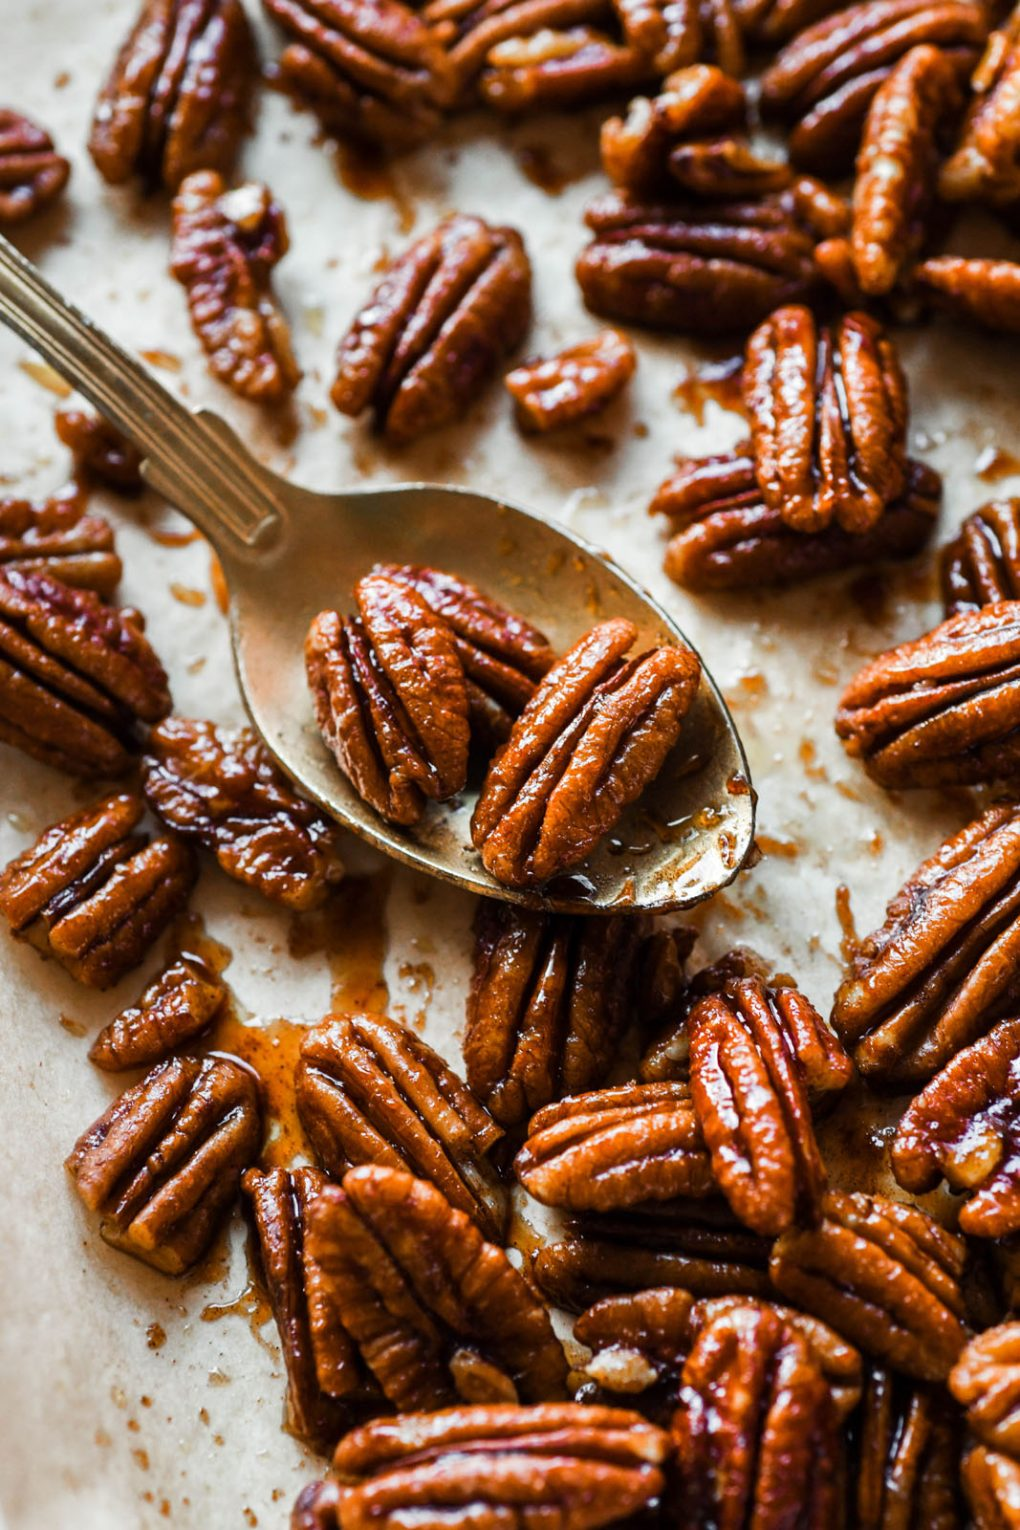 Close up shot of a few candied pecans sitting on a gold spoon, on a parchment lined baking sheet surrounded by scattered candied pecans.